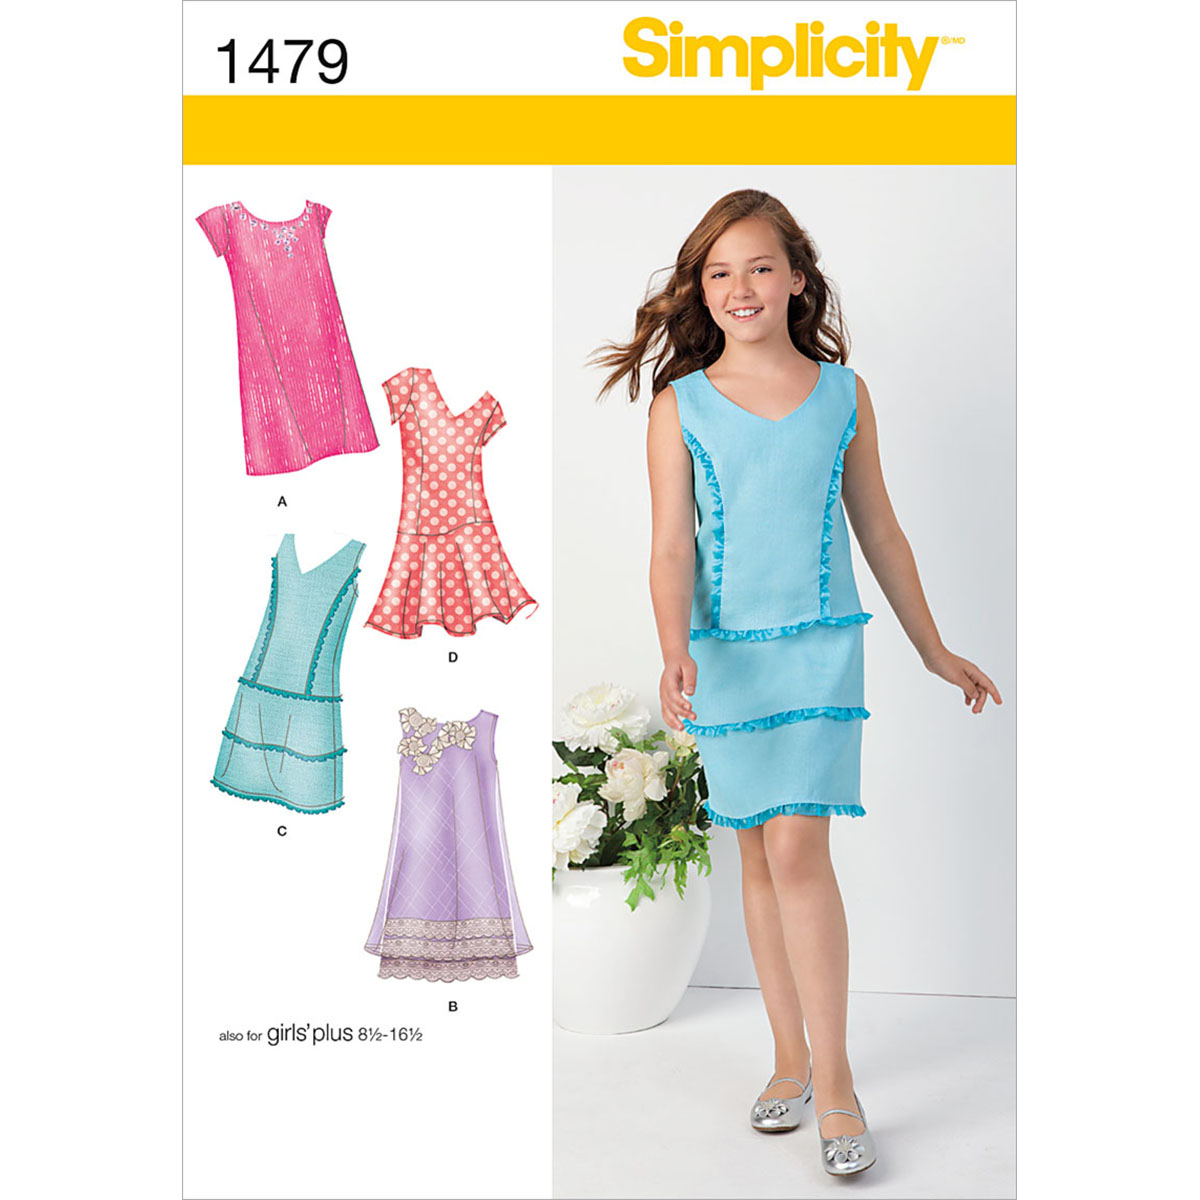 Simplicity Pattern 1479BB 8 1/2 - 16-Girl Boy Dresses